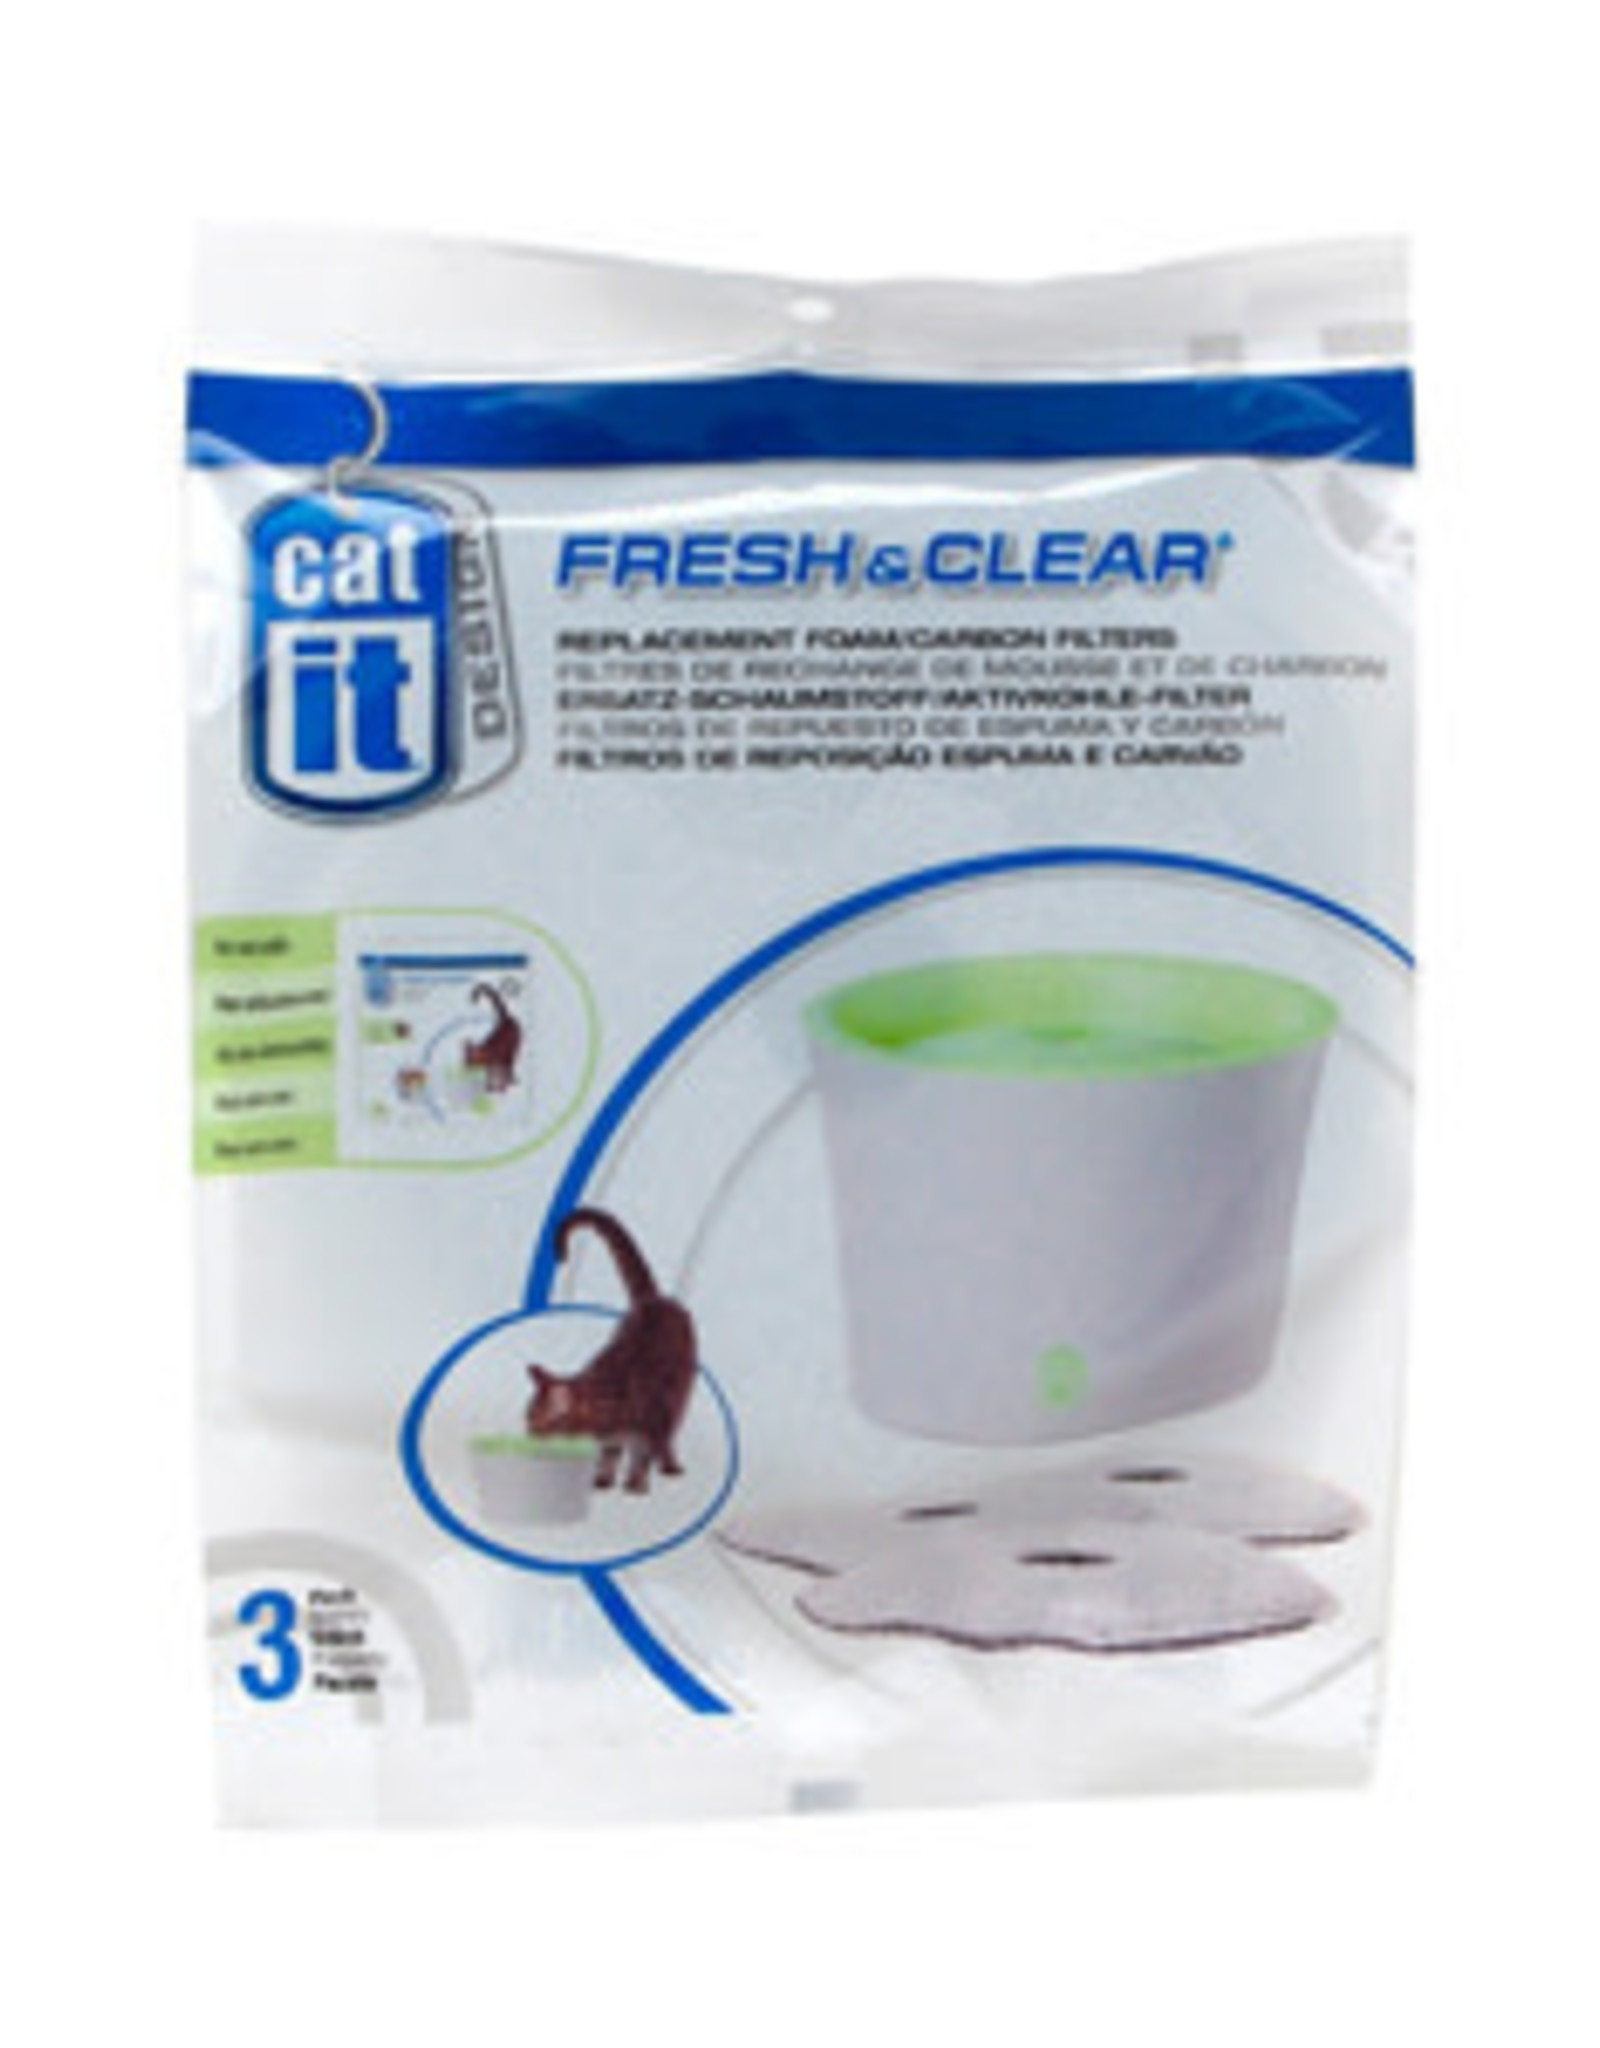 Hagen Catit Foam Cartridge Filter Refill 3PK